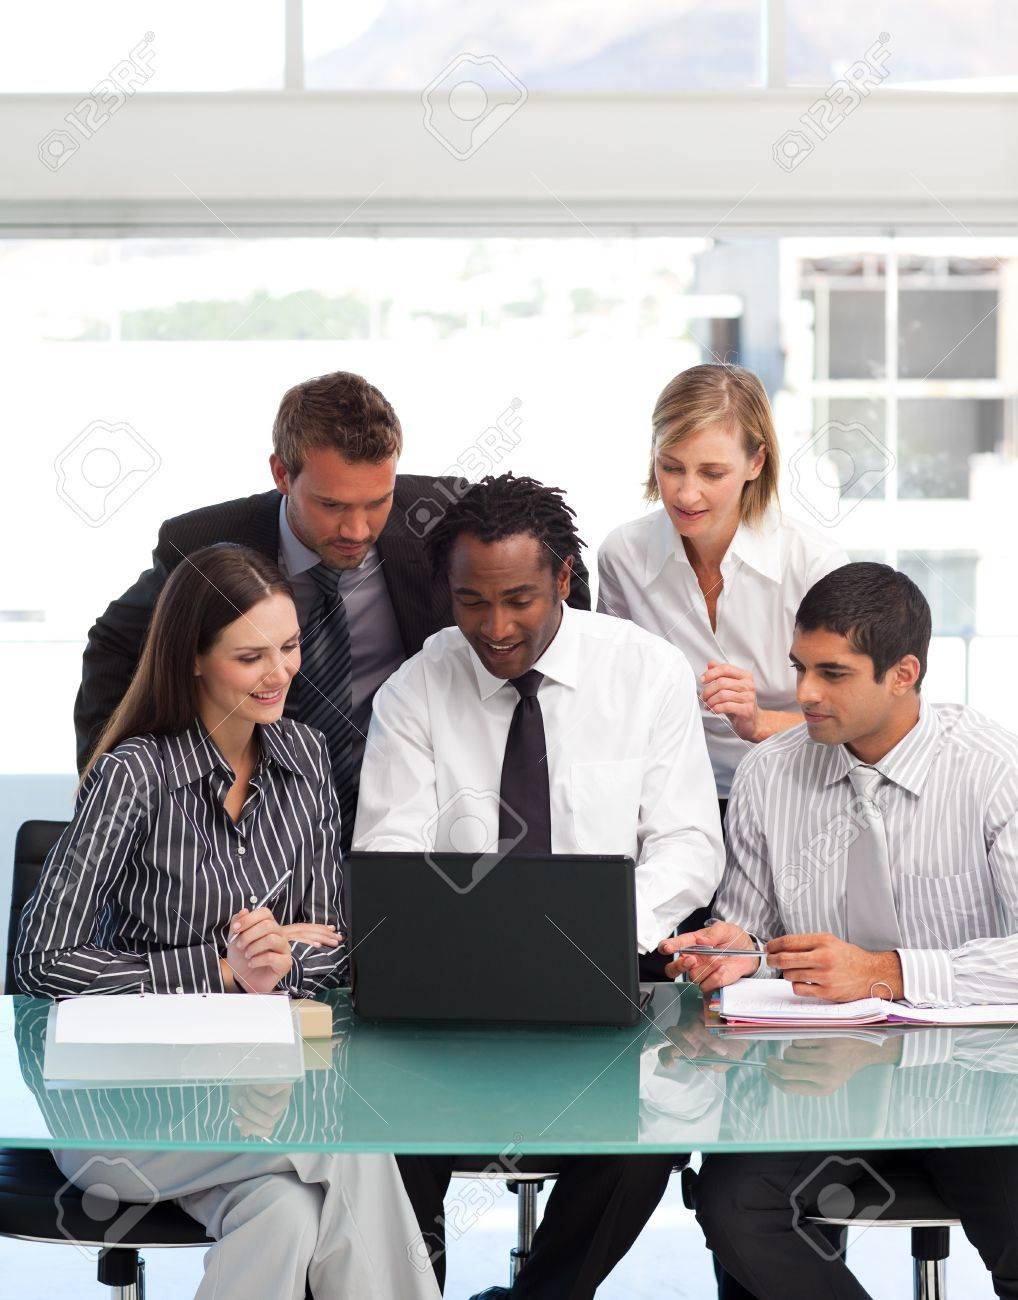 Business people using a laptop together Stock Photo - 10114796